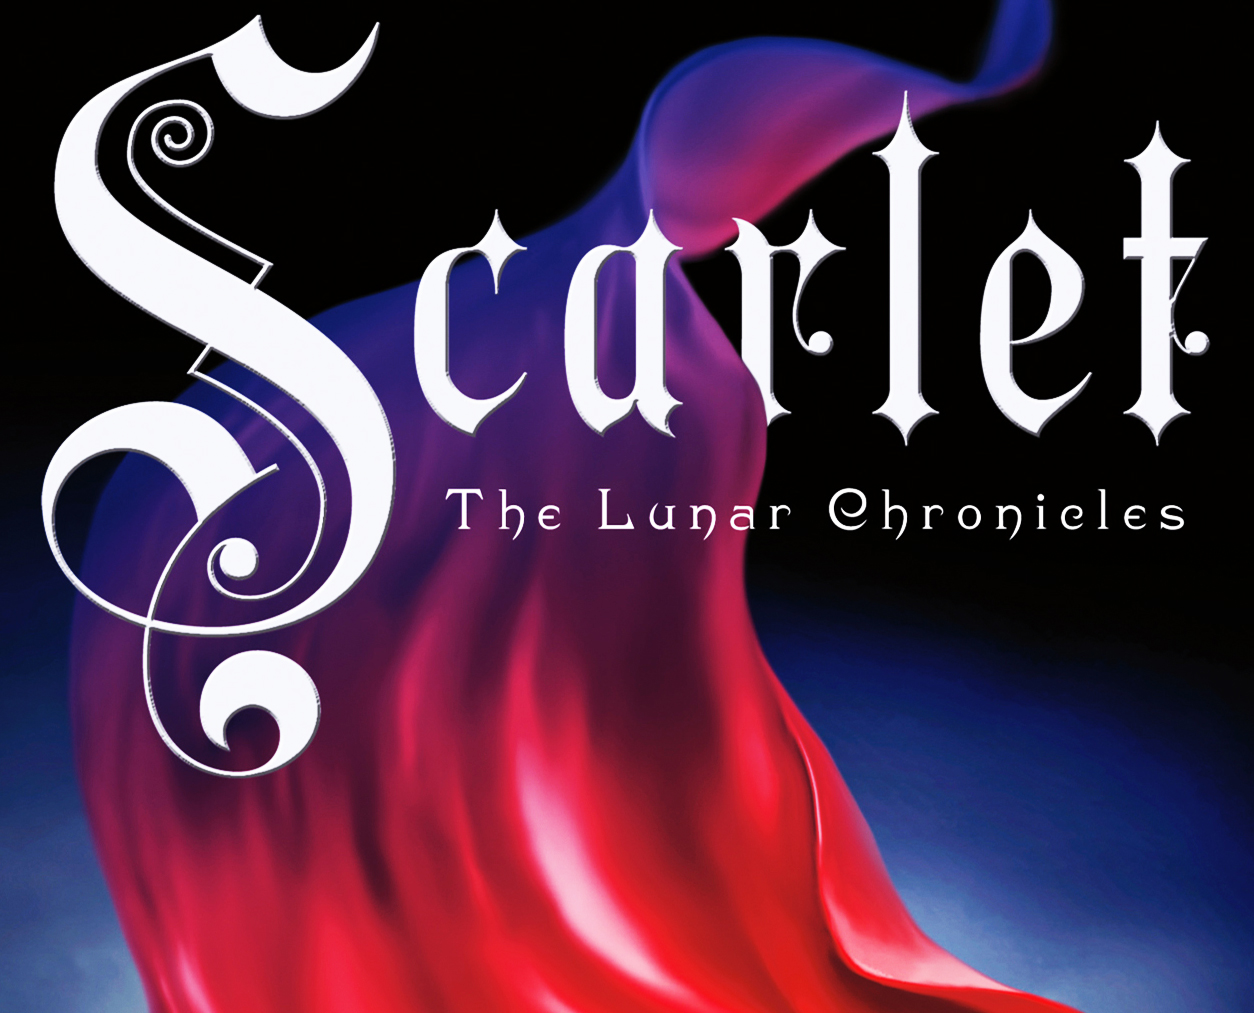 Scarlet Marissa Meyer The Lunar Chronicles